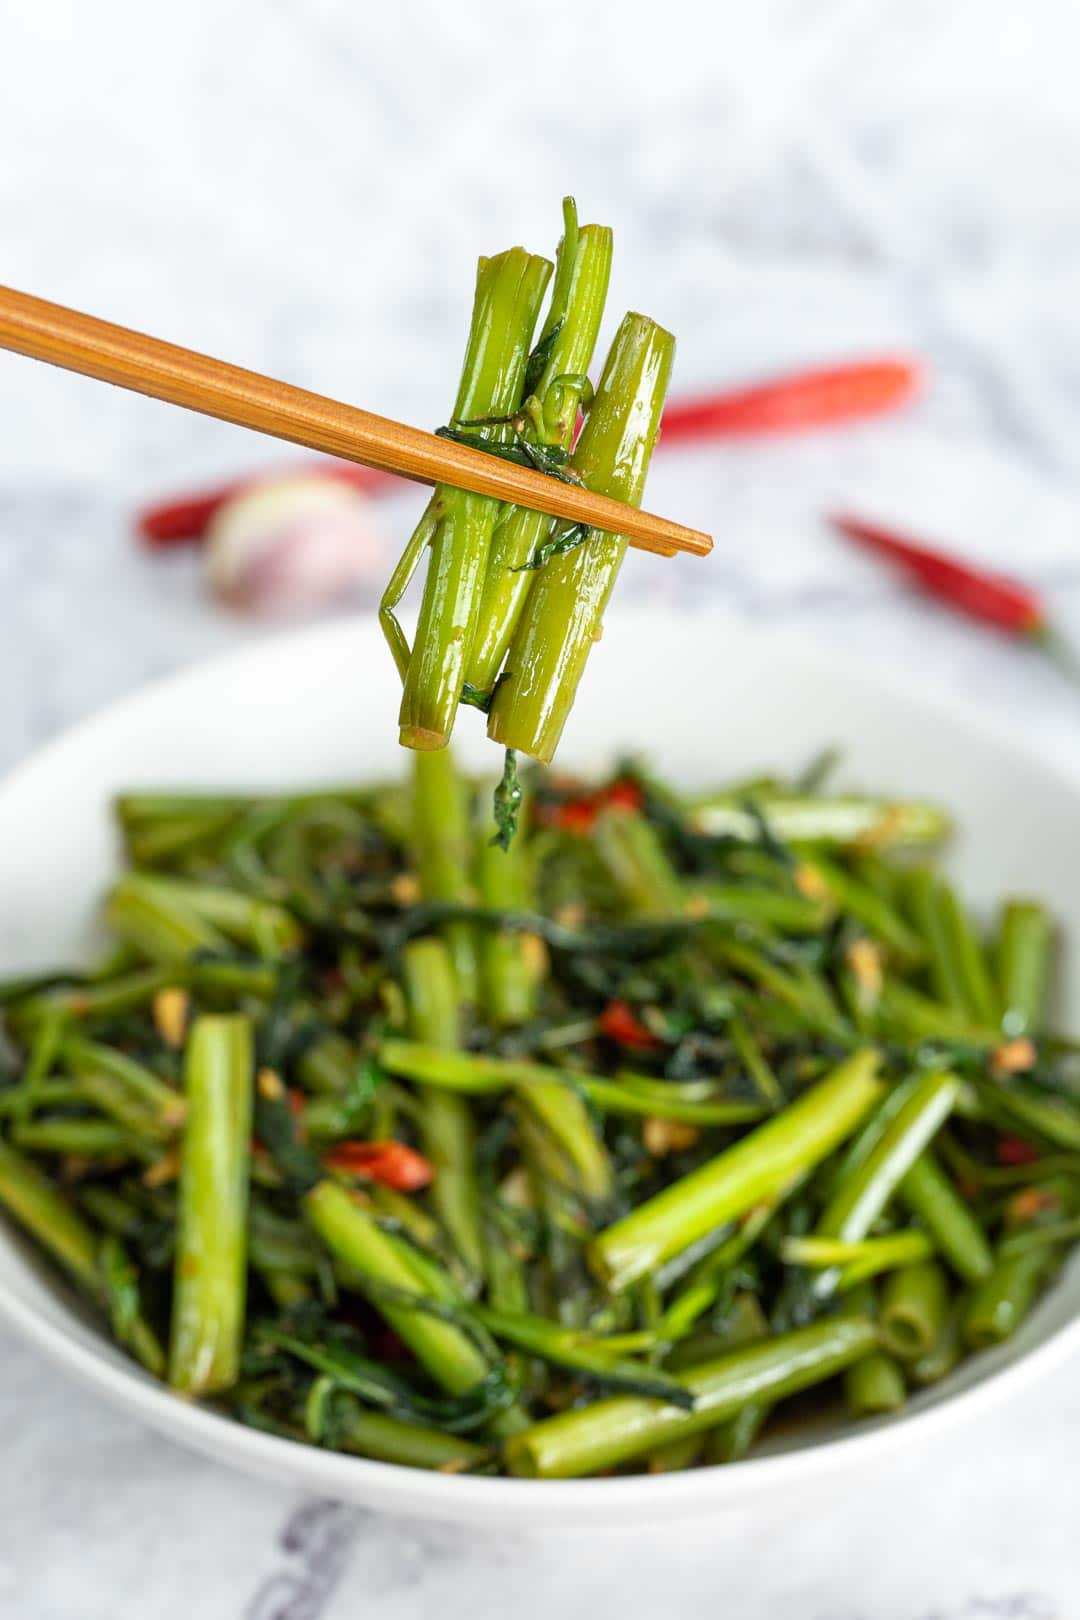 stir-fried morning glory lifted up from plate with a pair of chopsticks